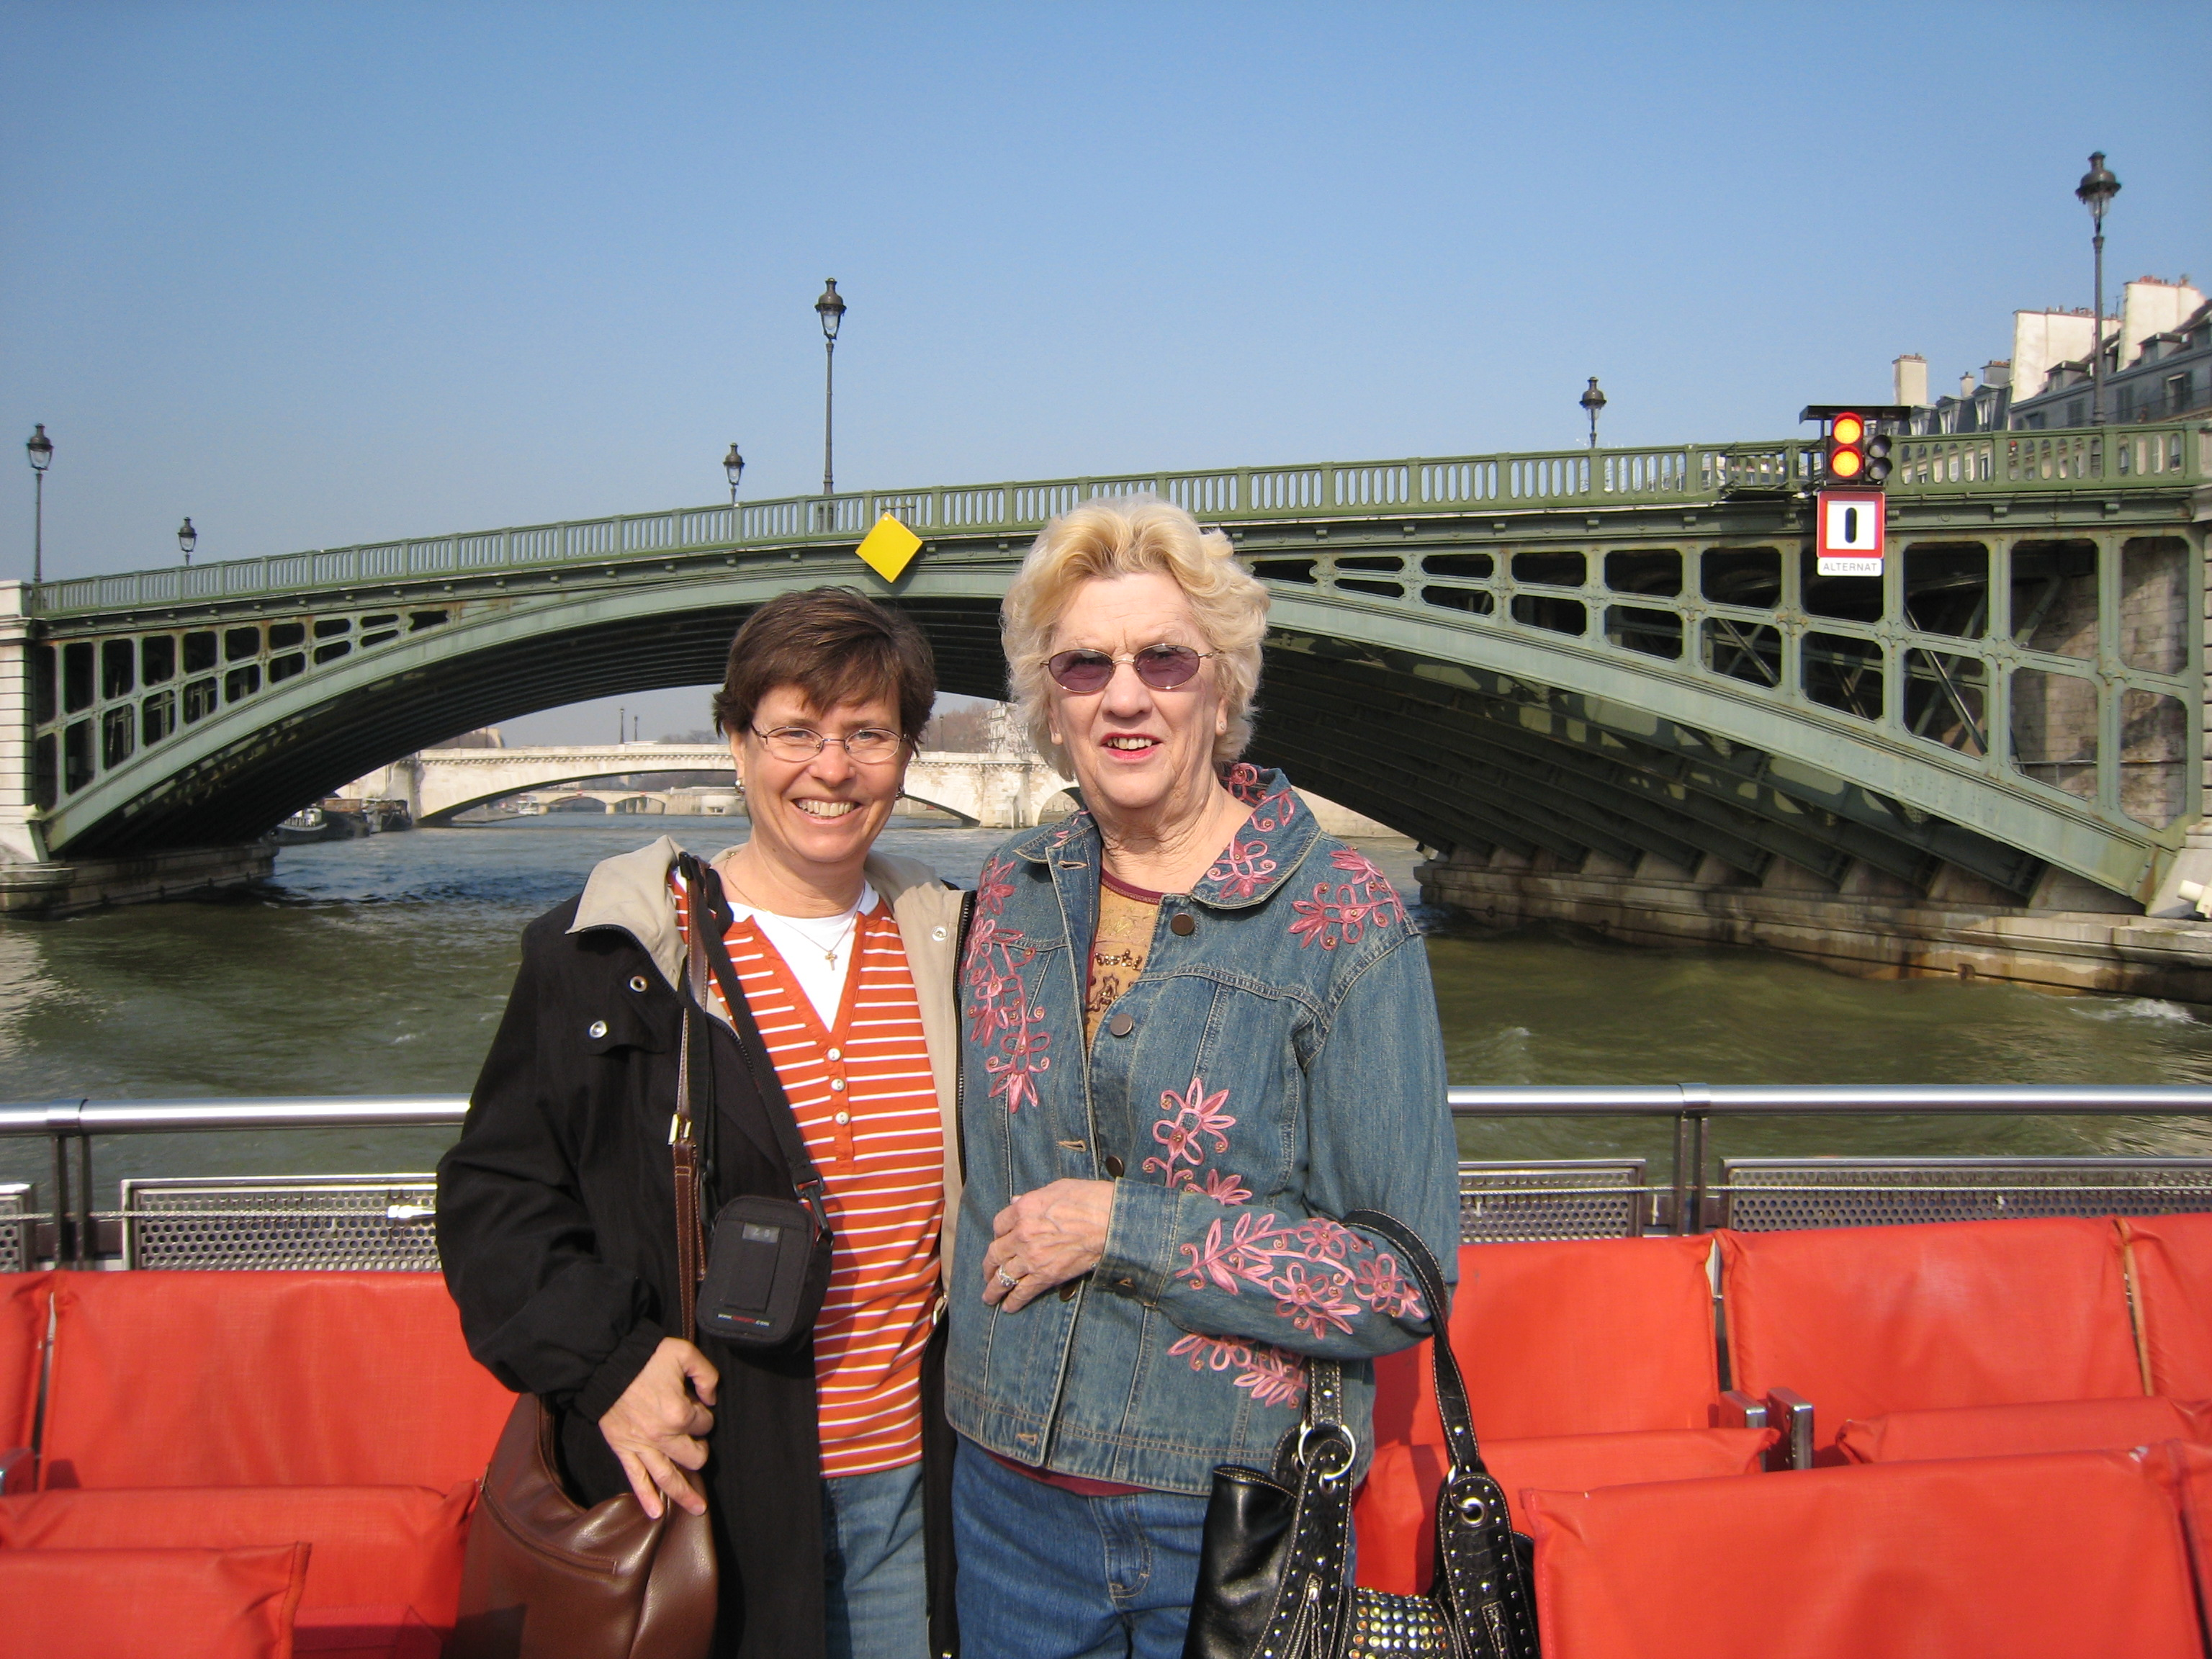 With me in Paris, March 2007